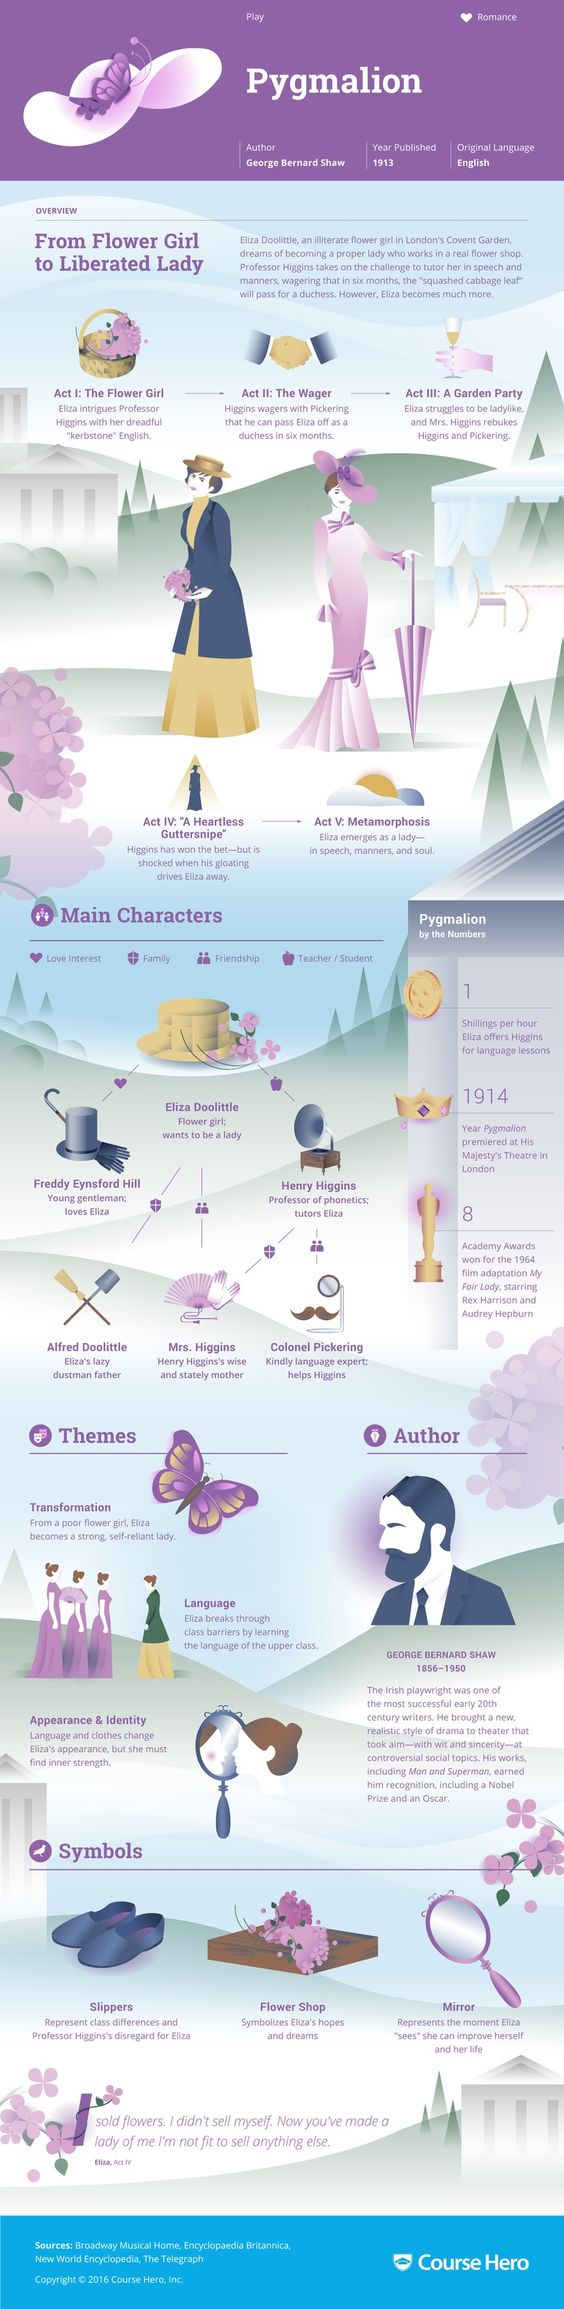 this coursehero infographic on pyg on is both visually study guide for george bernard shaw s pyg on including act summary character analysis and more learn all about pyg on ask questions